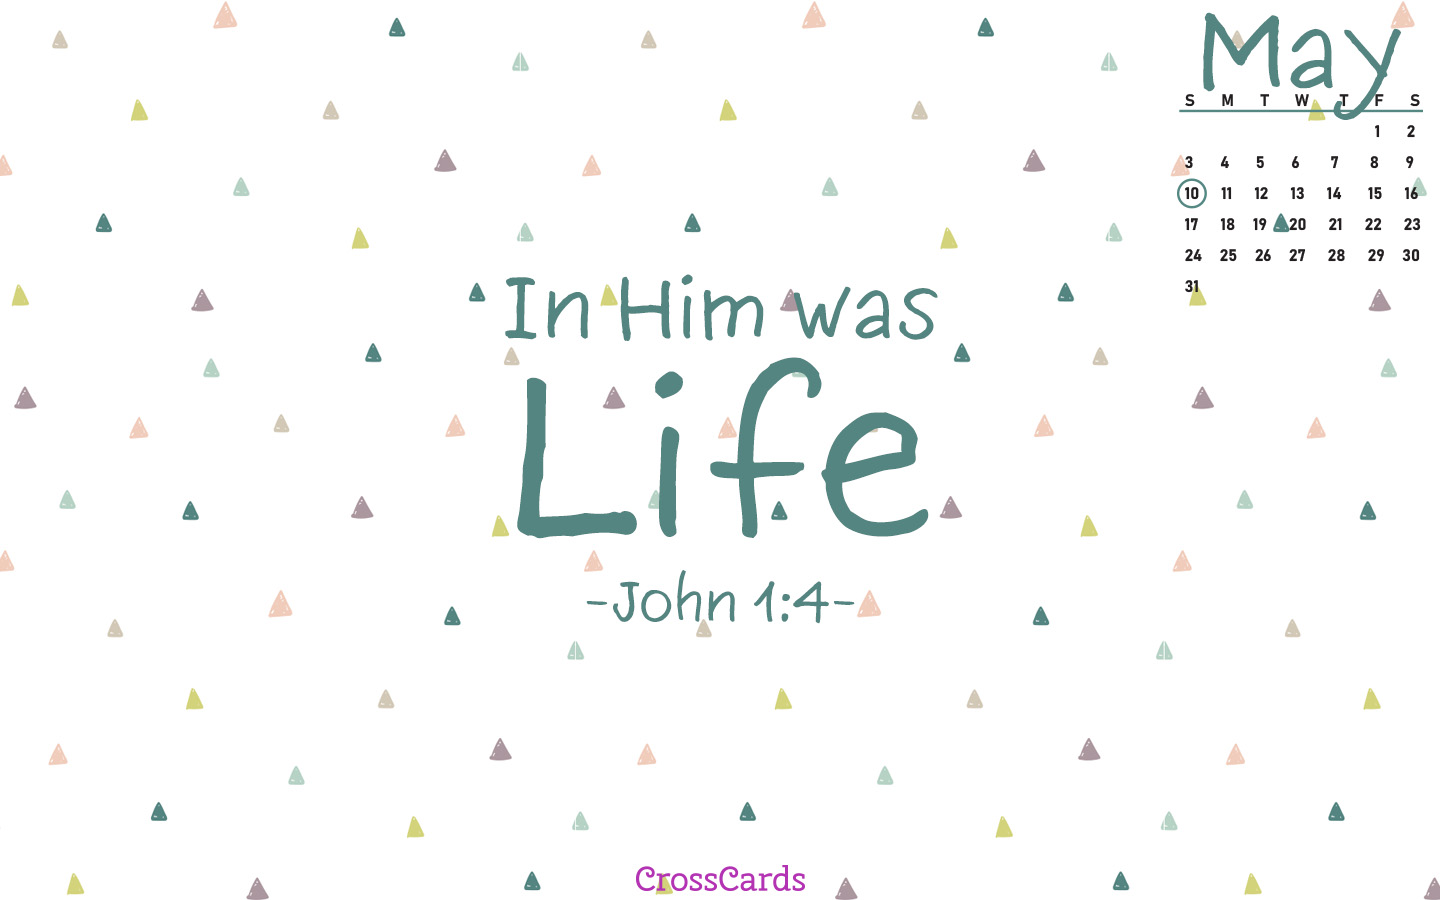 May 2020 - John 1:4 mobile phone wallpaper